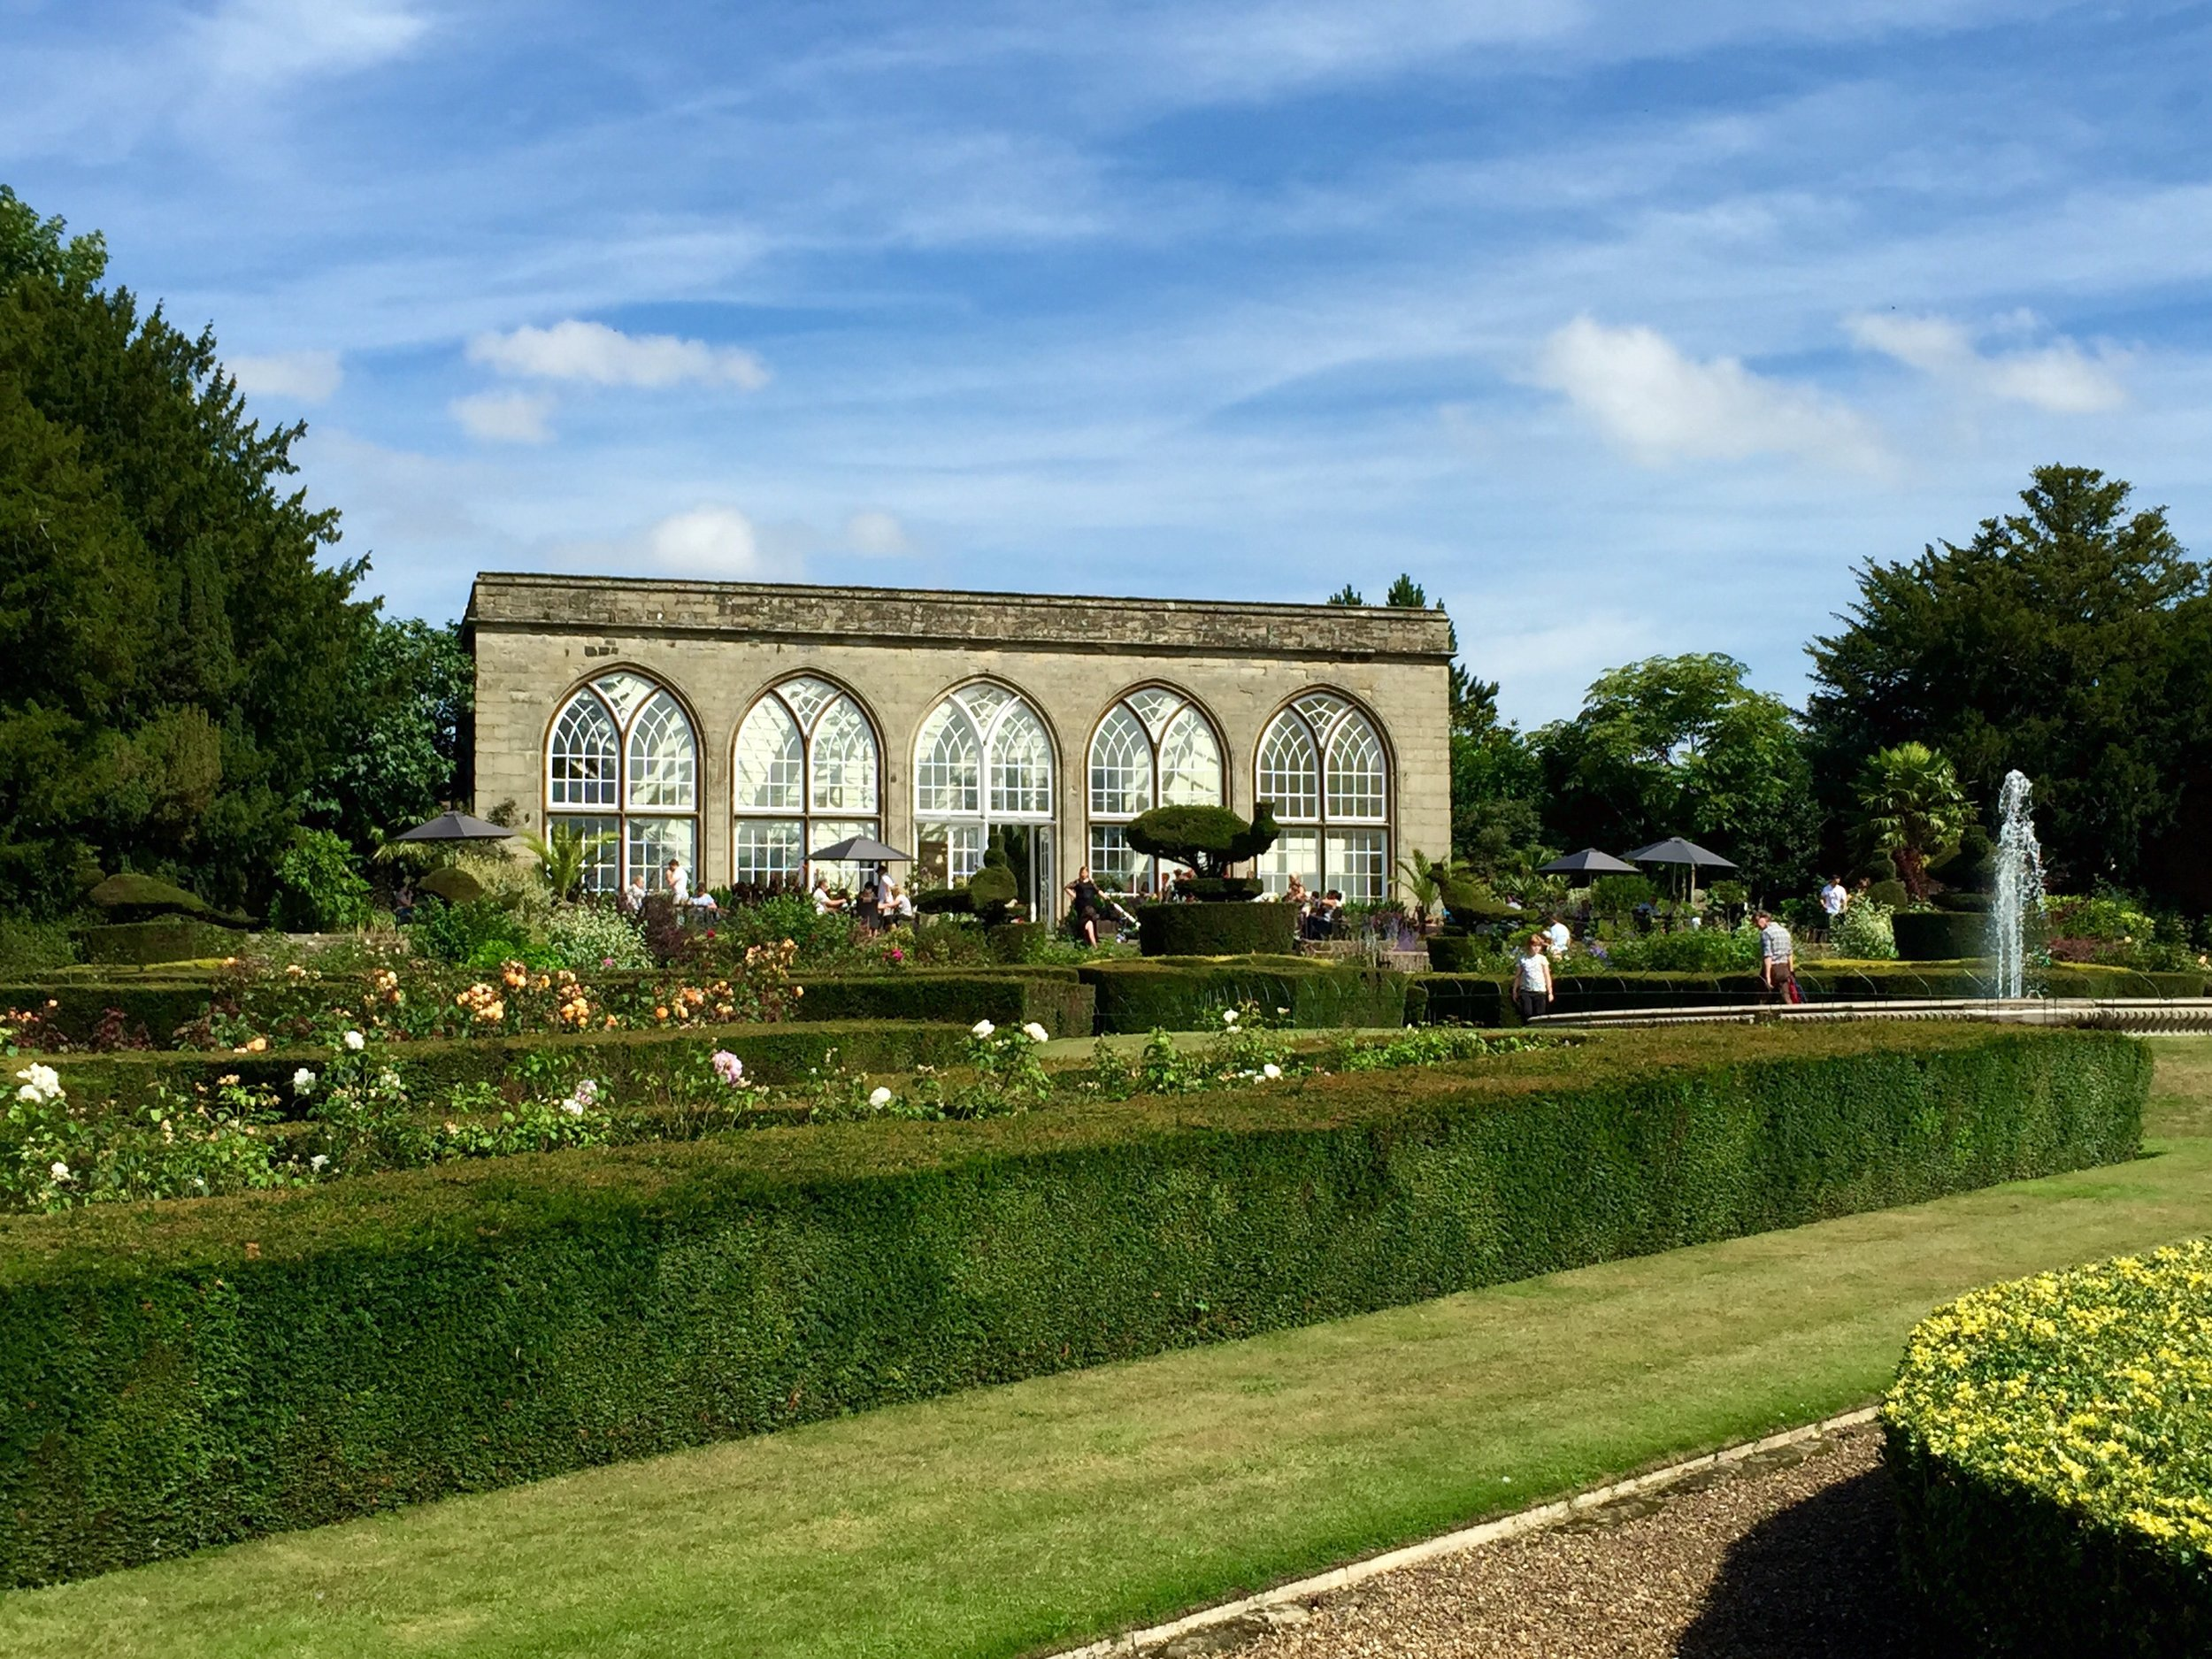 Conservatory or Orangery. Starting to learn about the famed English gardens!